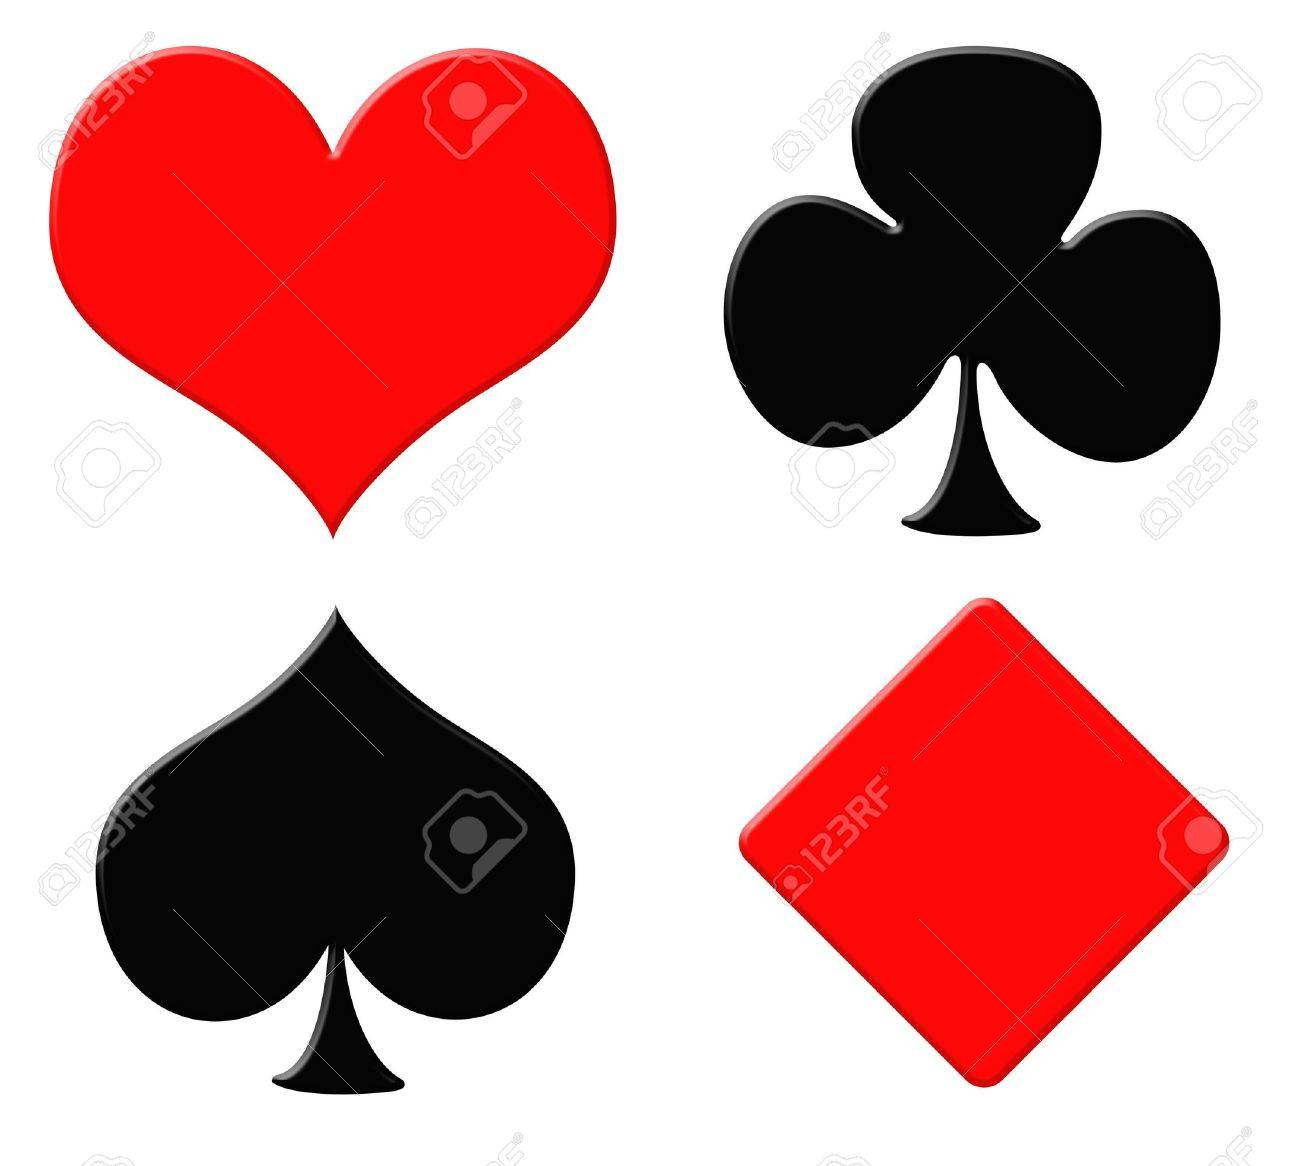 Playing card symbols or suits, isolated on white background. Stock Photo - 5548640